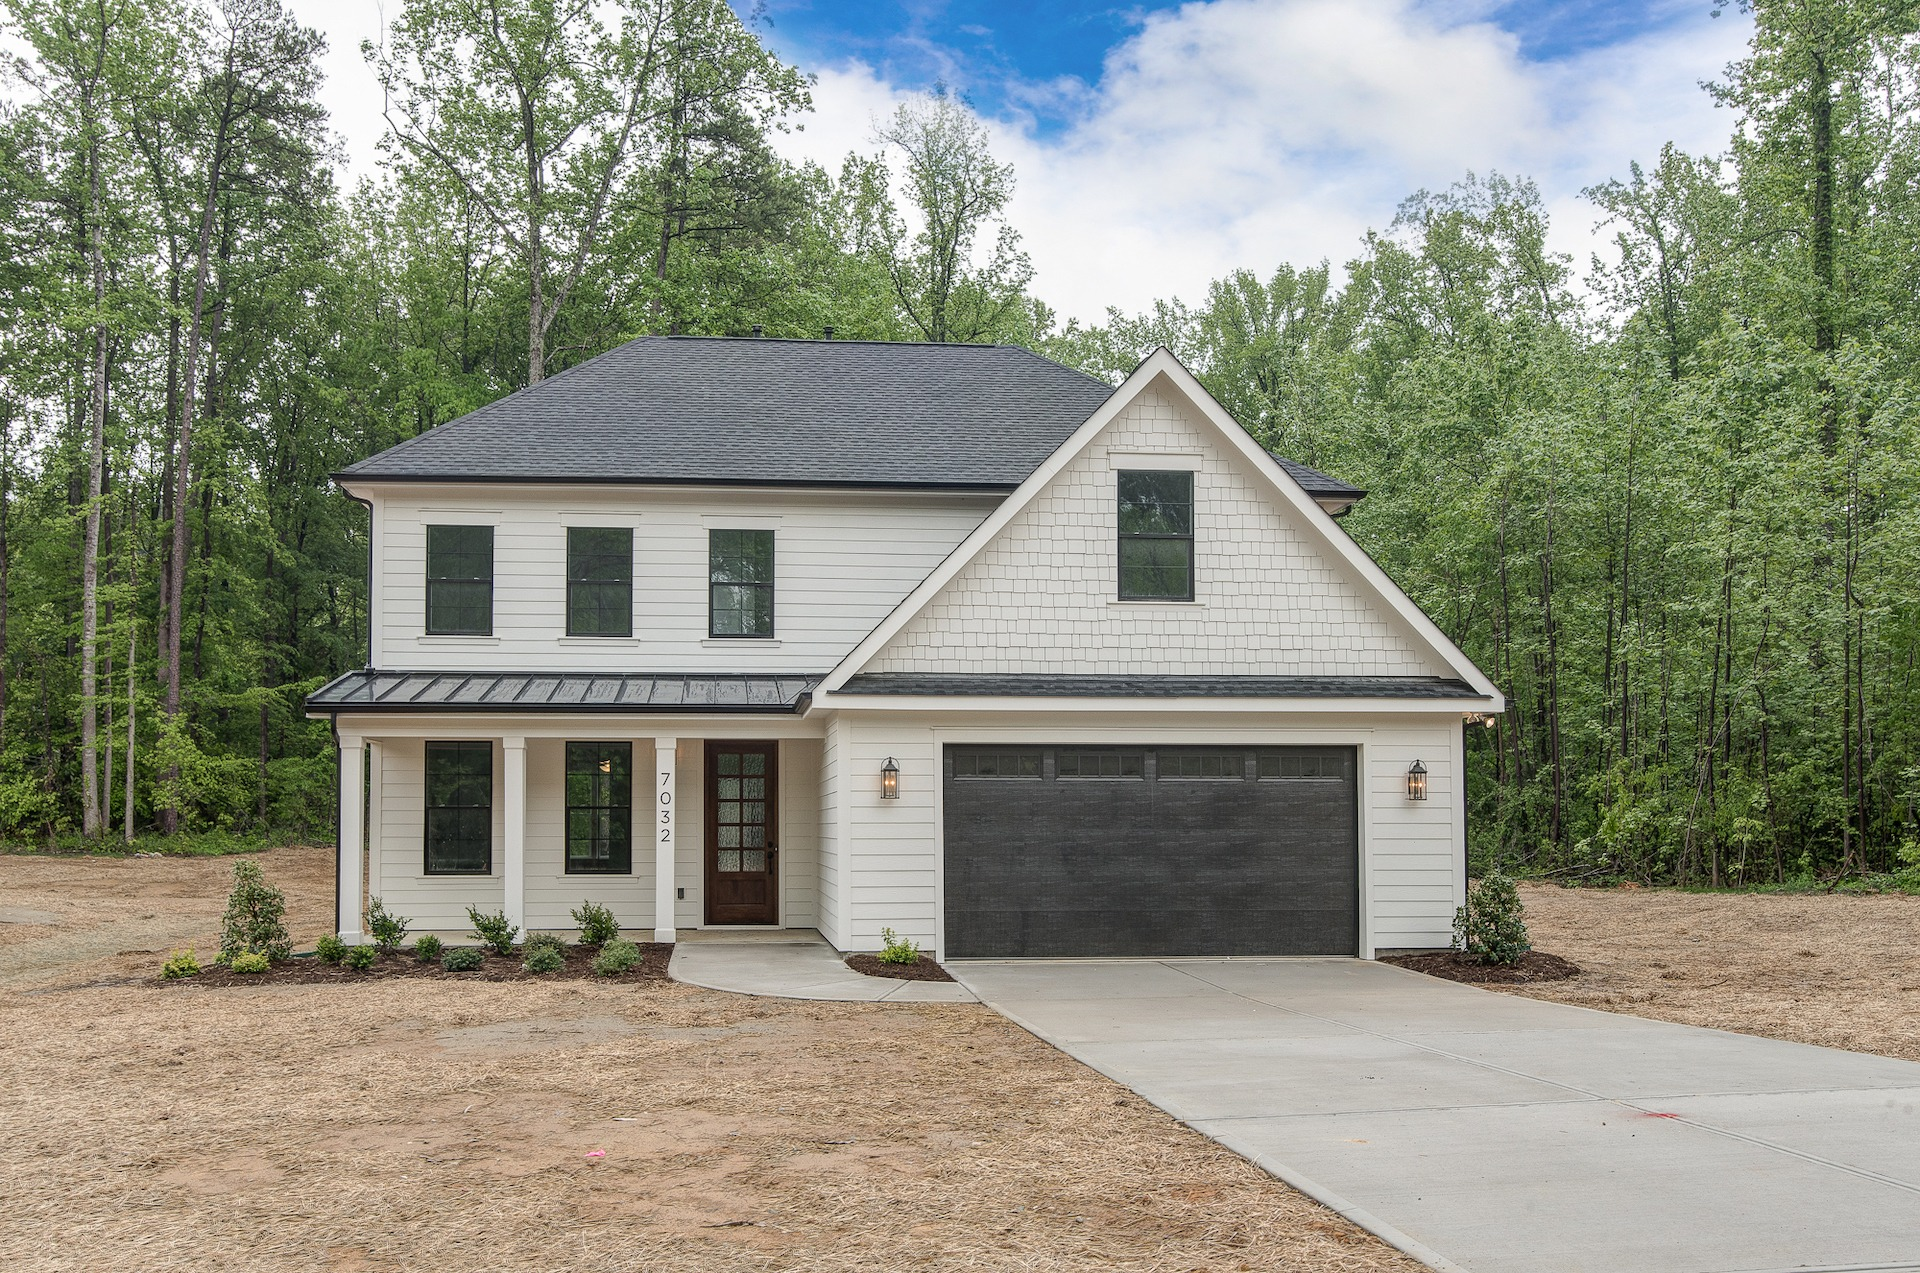 Hornet Homes - Custom Home Builders in Charlotte, NC